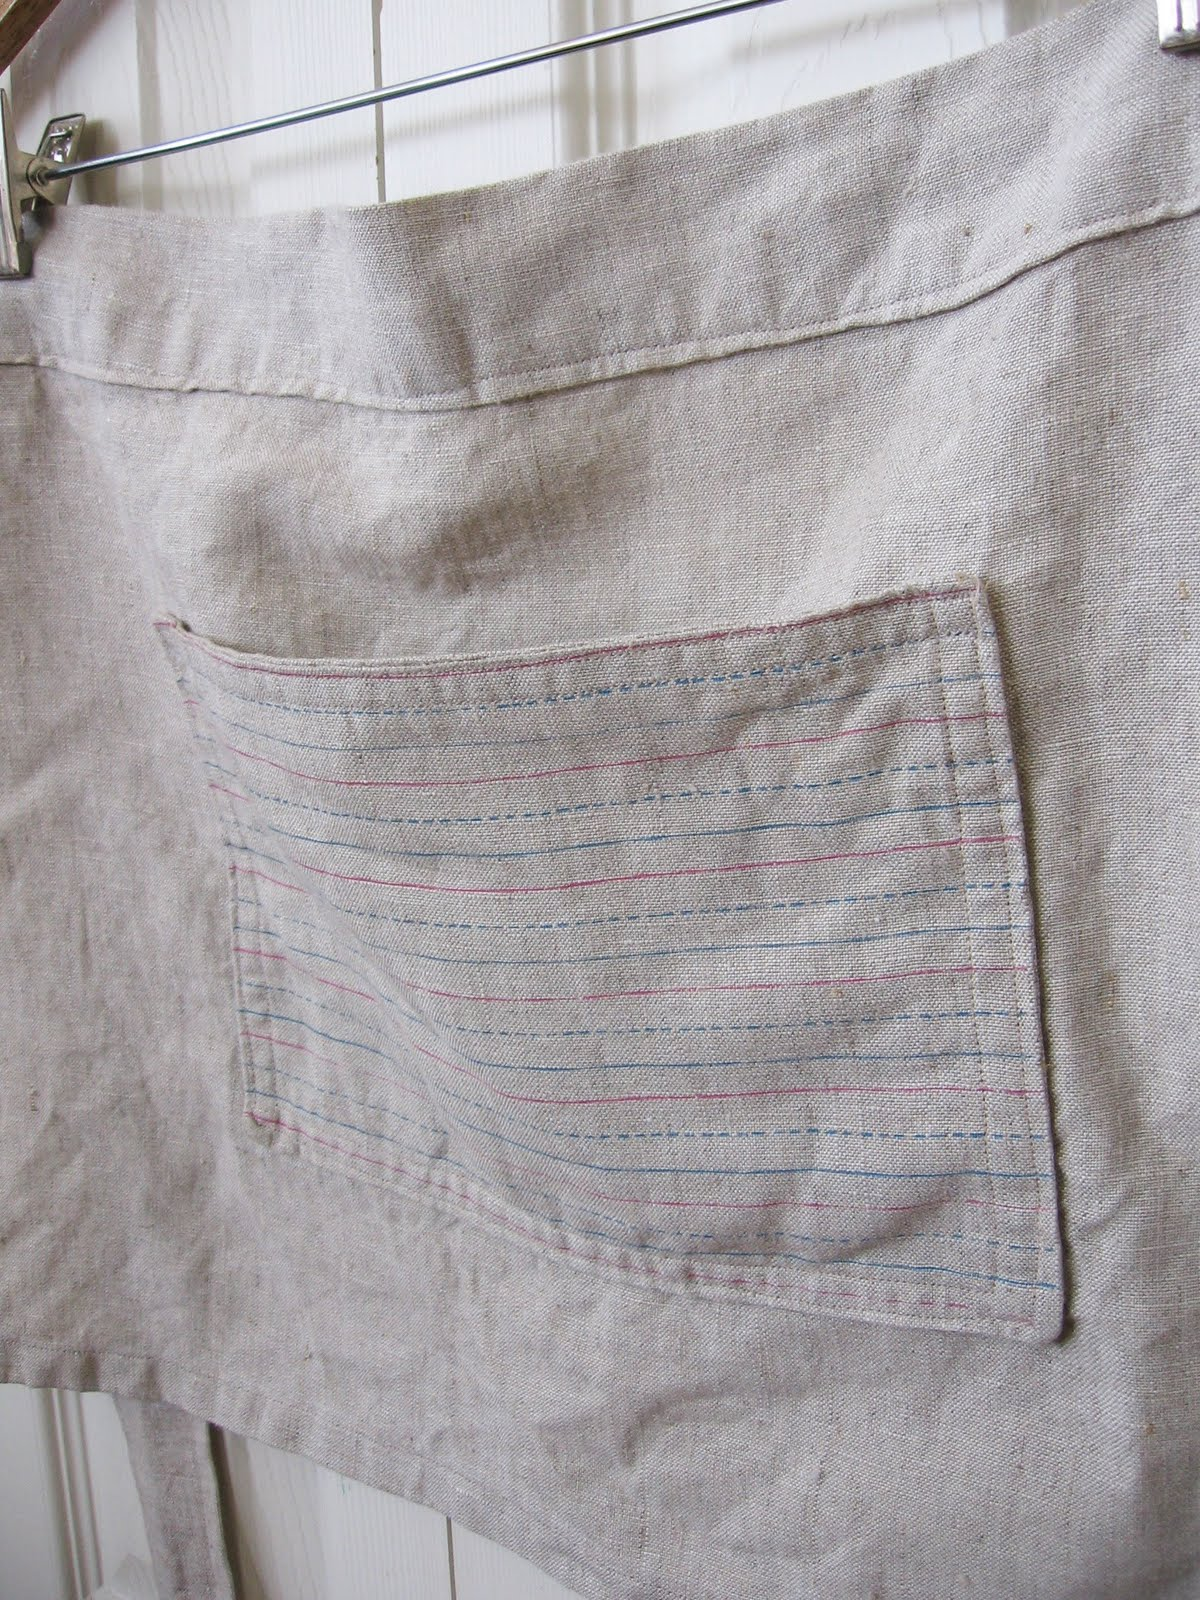 White linen apron - The Day Before The Sf Renegade Show I Decided To Make A Half Apron Using My Palmer Method Linen You Know Because I Had So Much Free Time